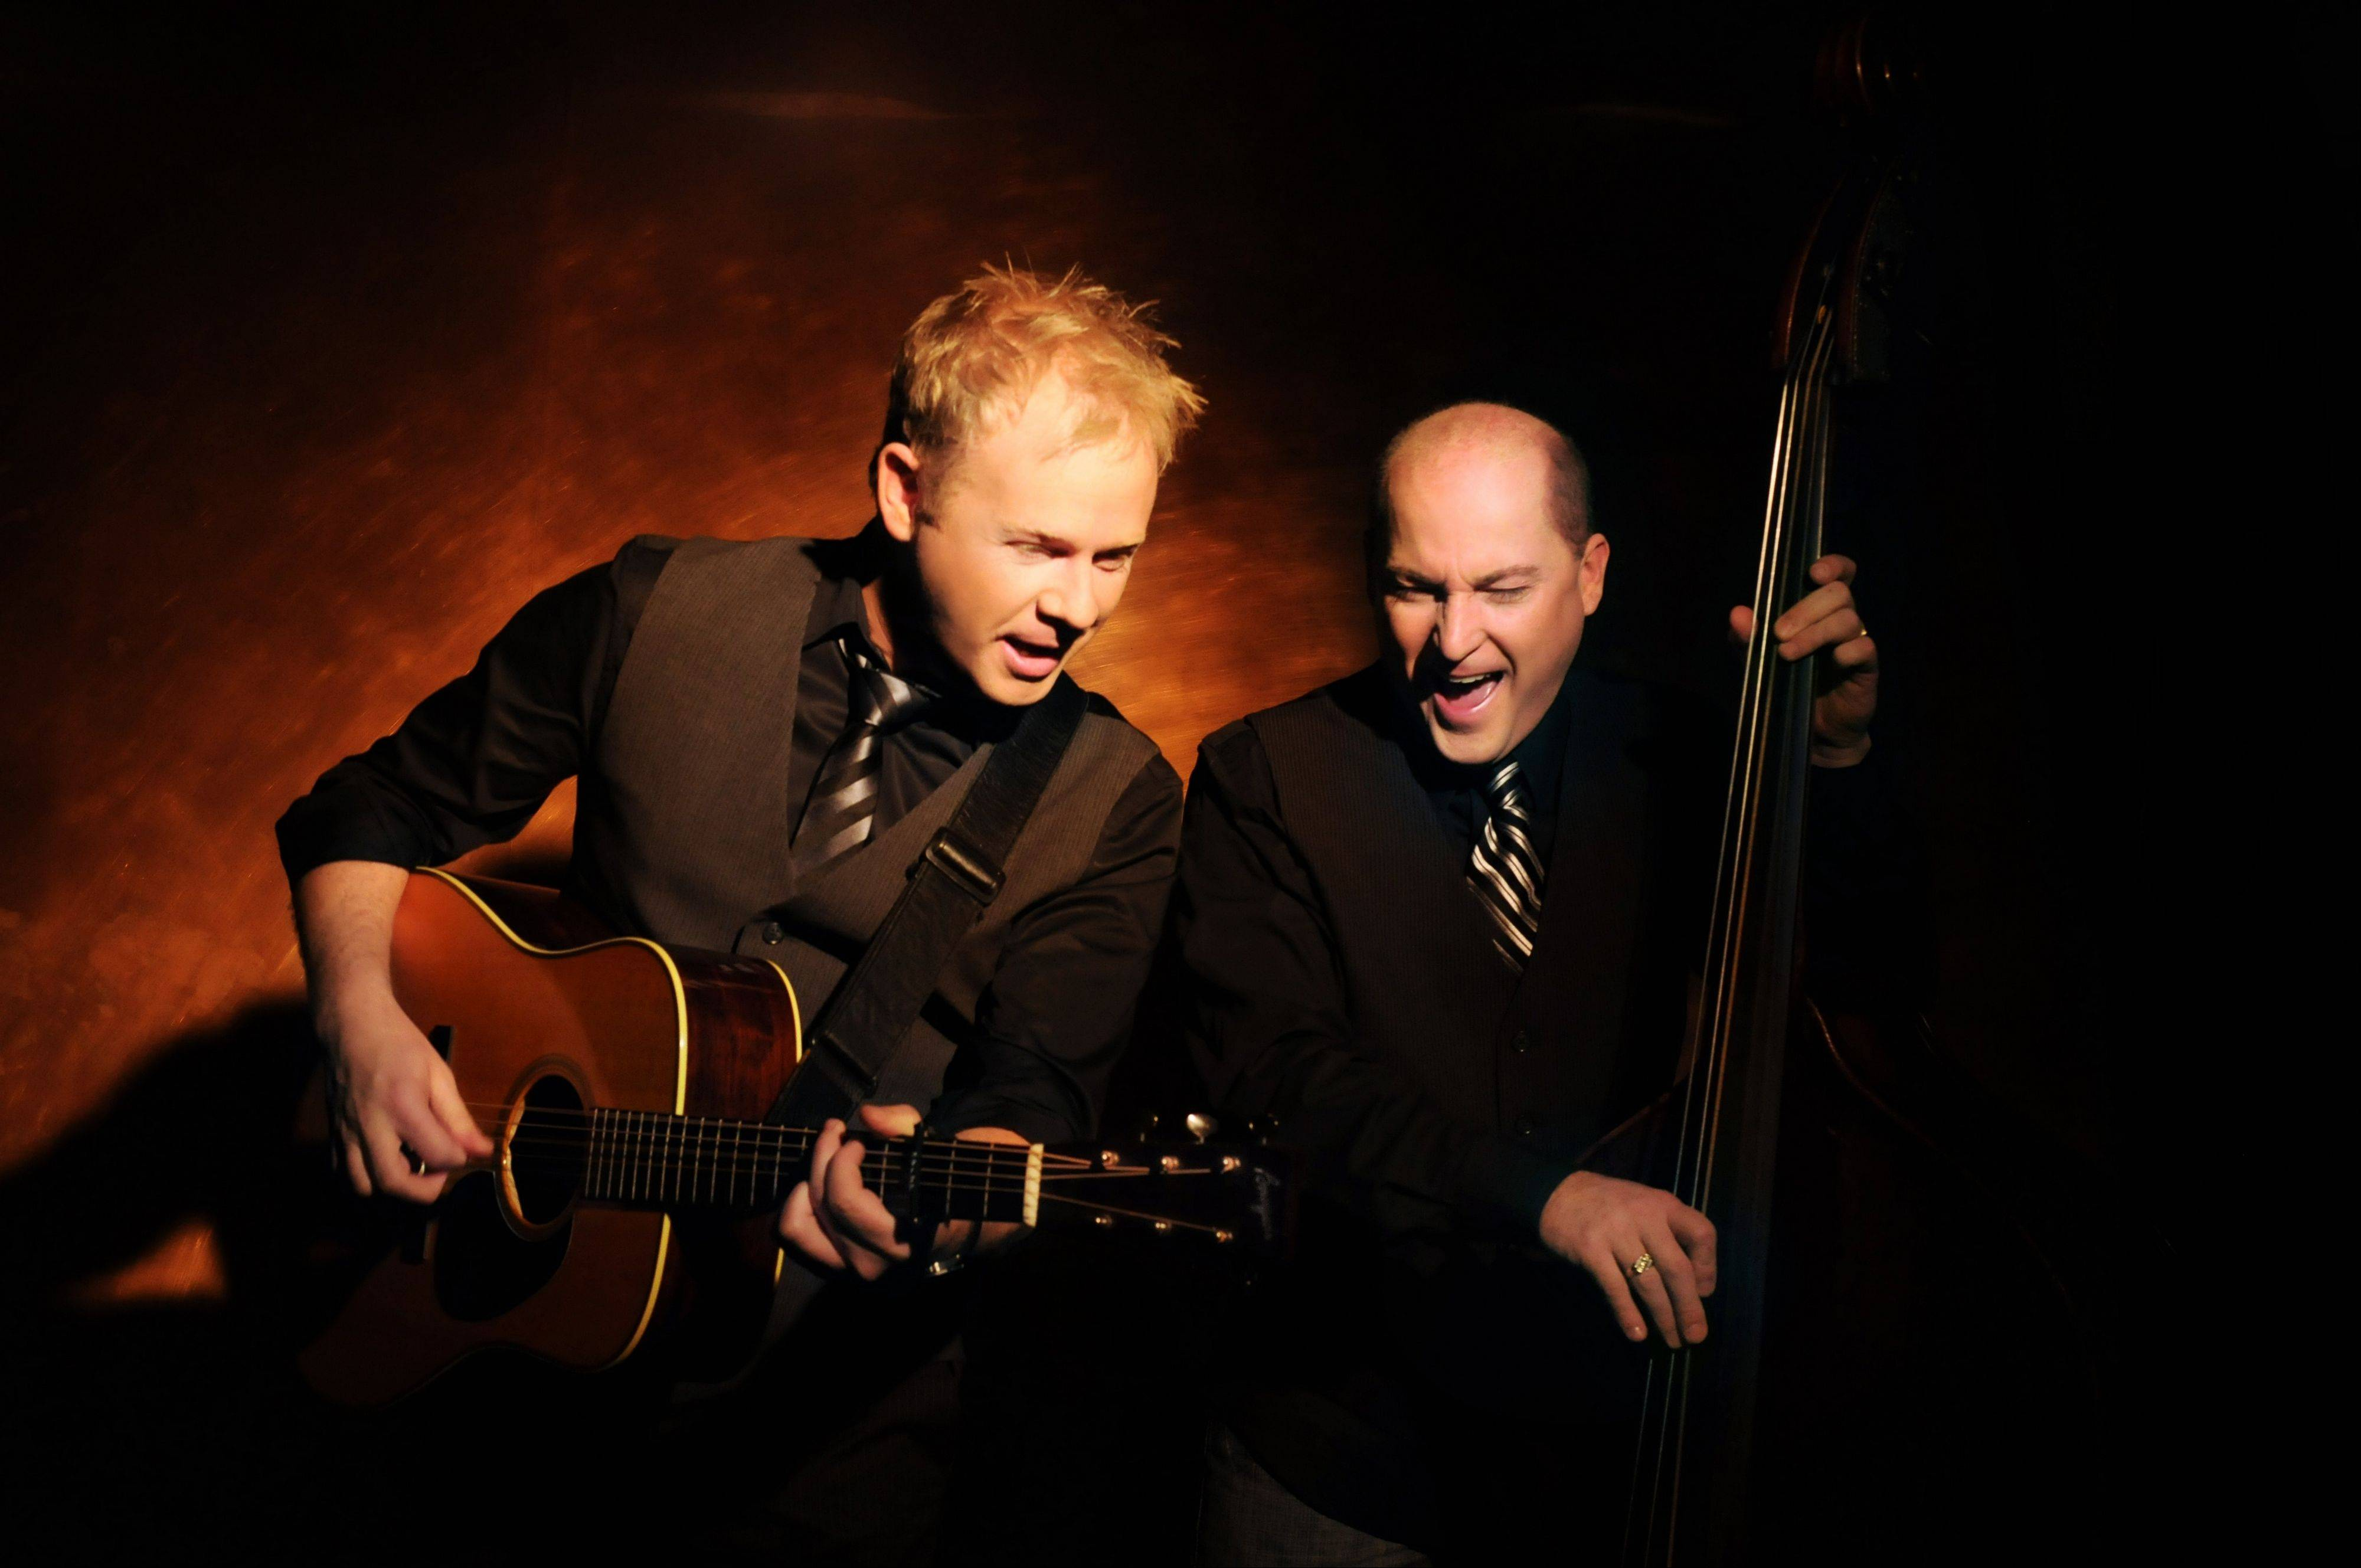 Dailey & Vincent are set to perform at College of Lake County's Lumber Center for the Performing Arts in Grayslake.